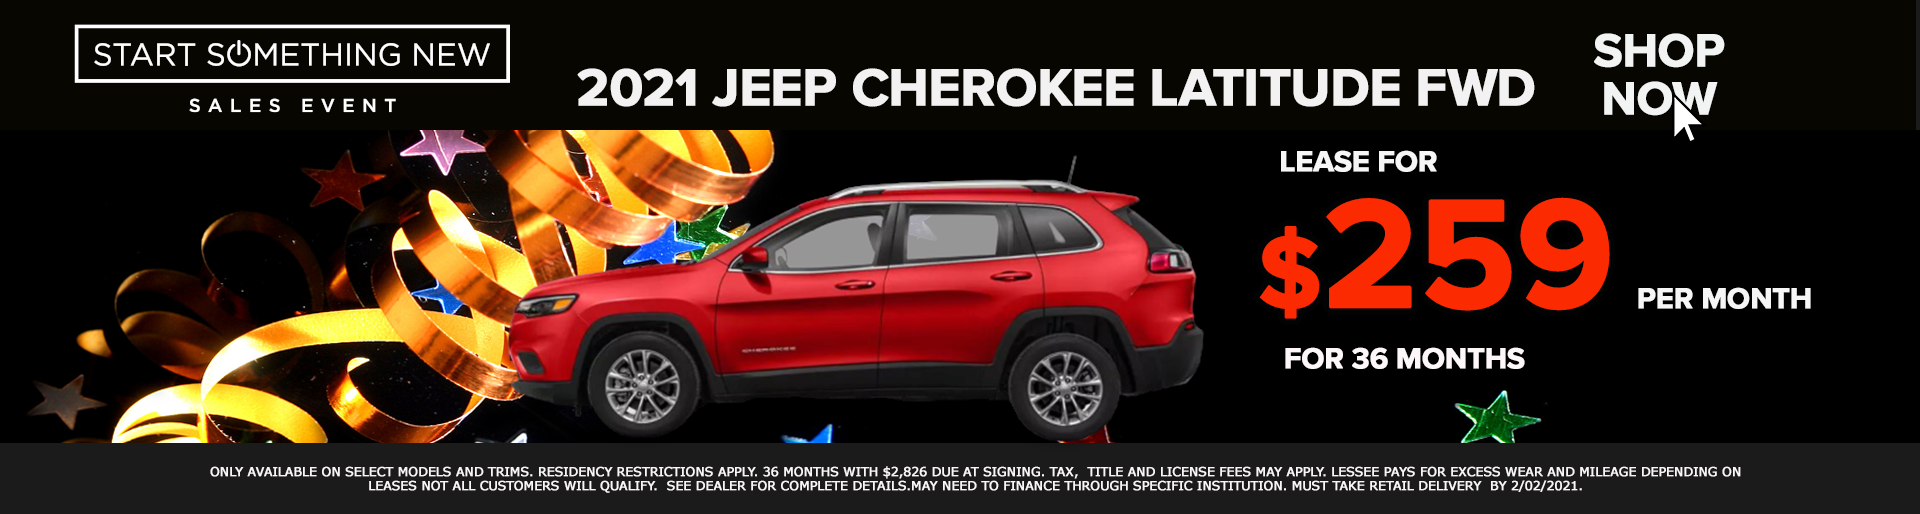 wetzel cherokee updated